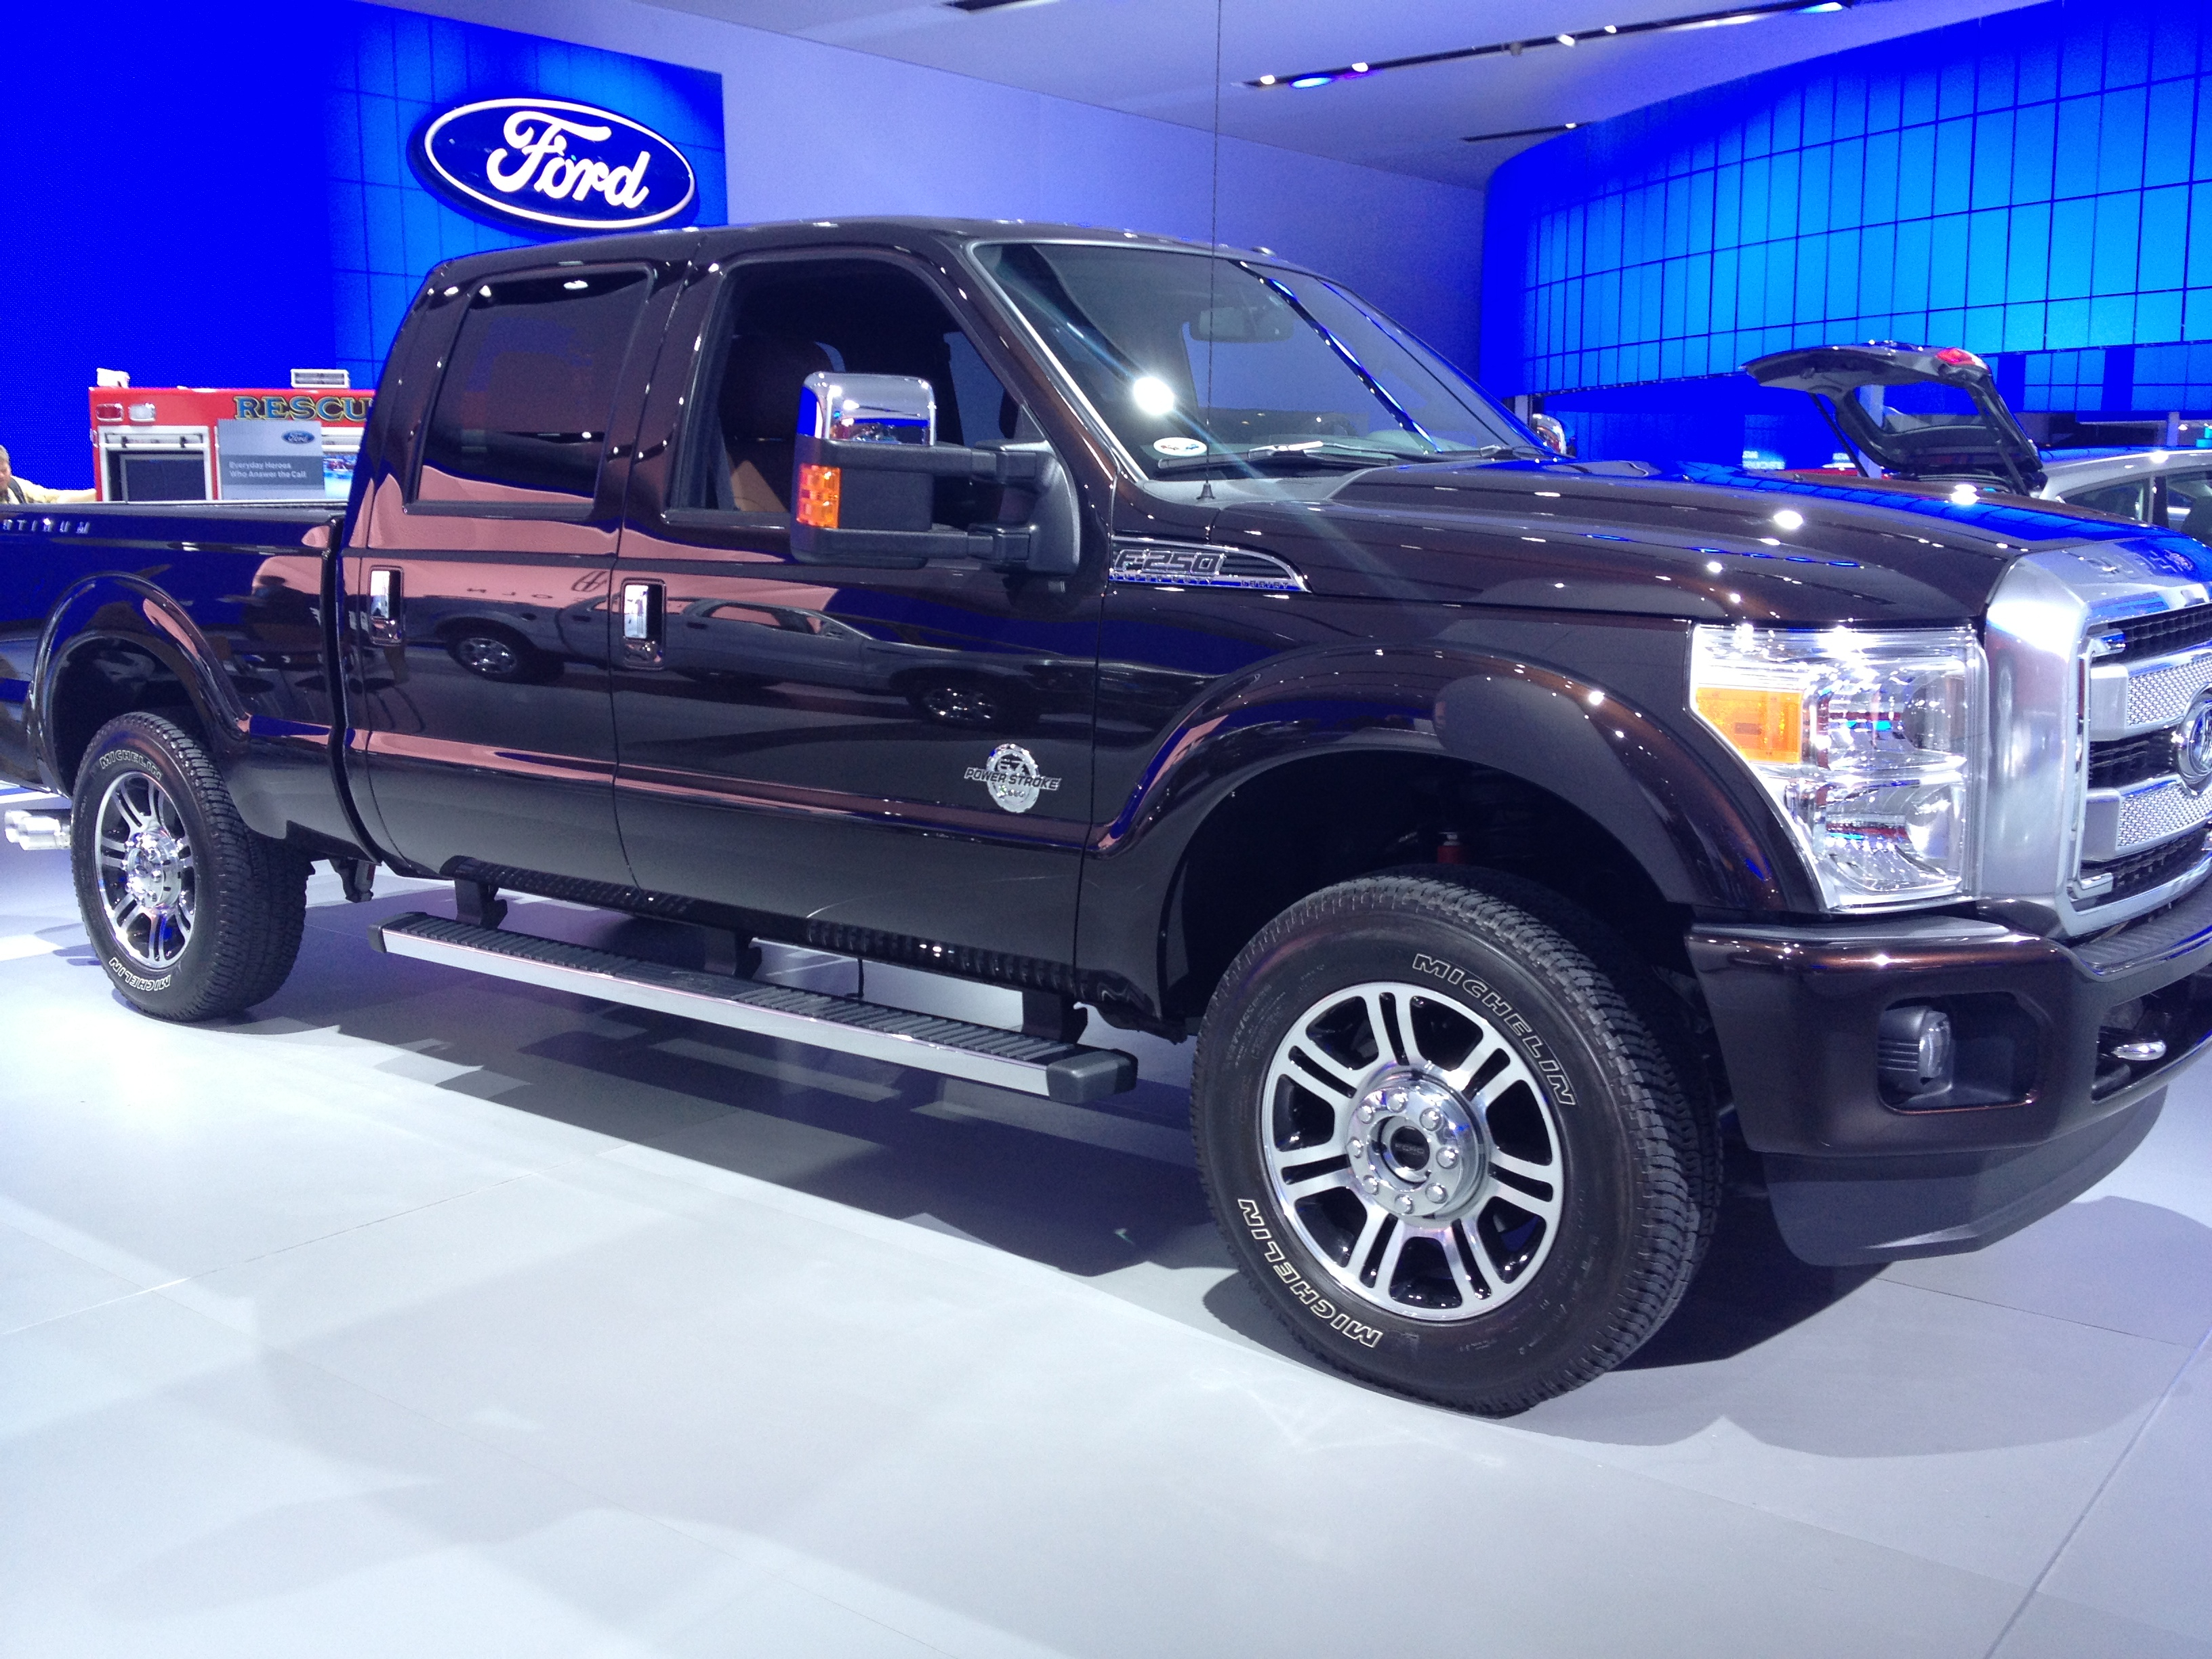 Ford Super Duty >> File:2013 Ford F-250 Platinum diesel (8403002959).jpg ...